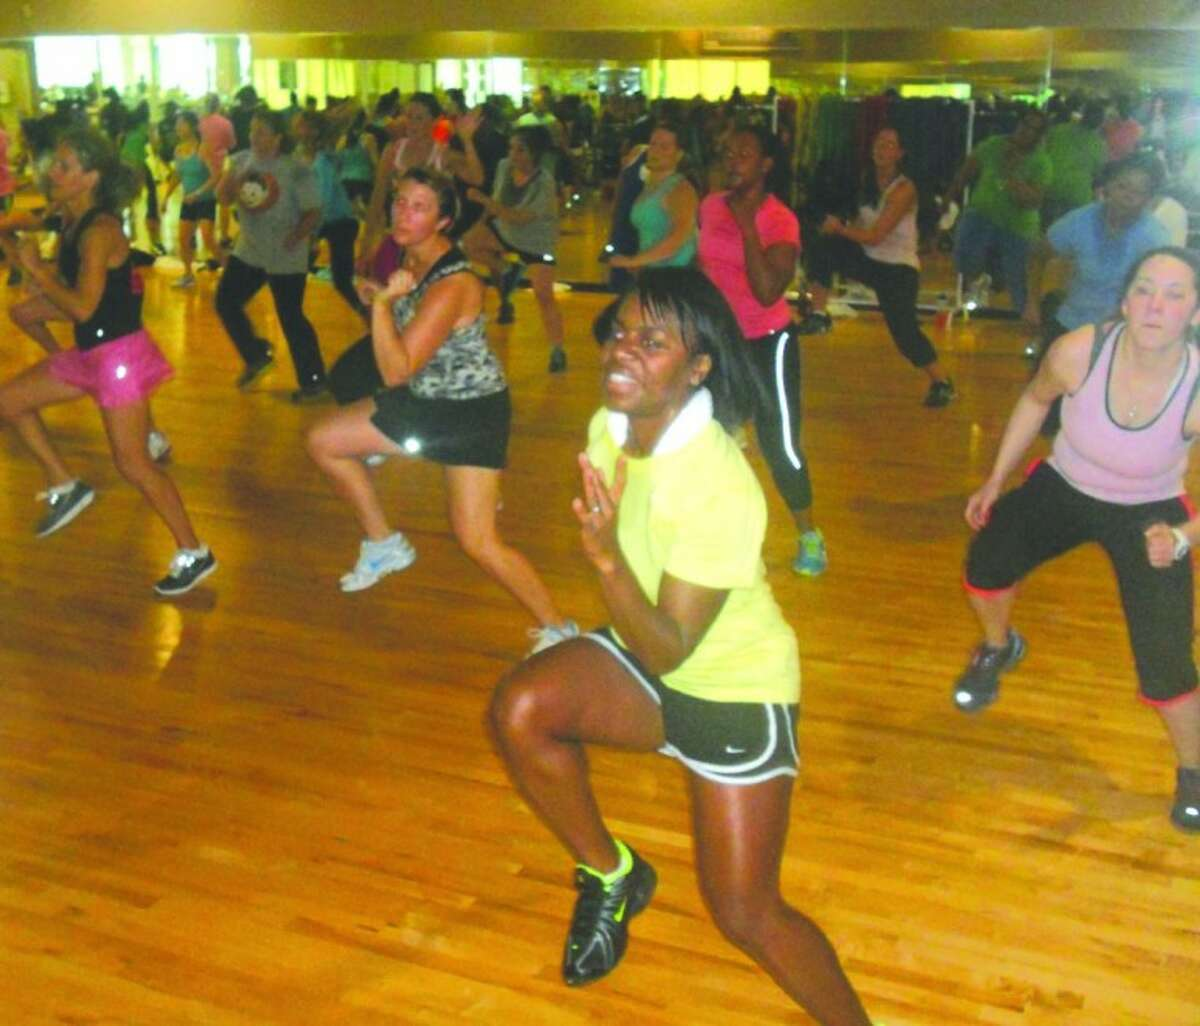 Soul Grooves participants enjoy a fast-paced choreographed cardio workout.